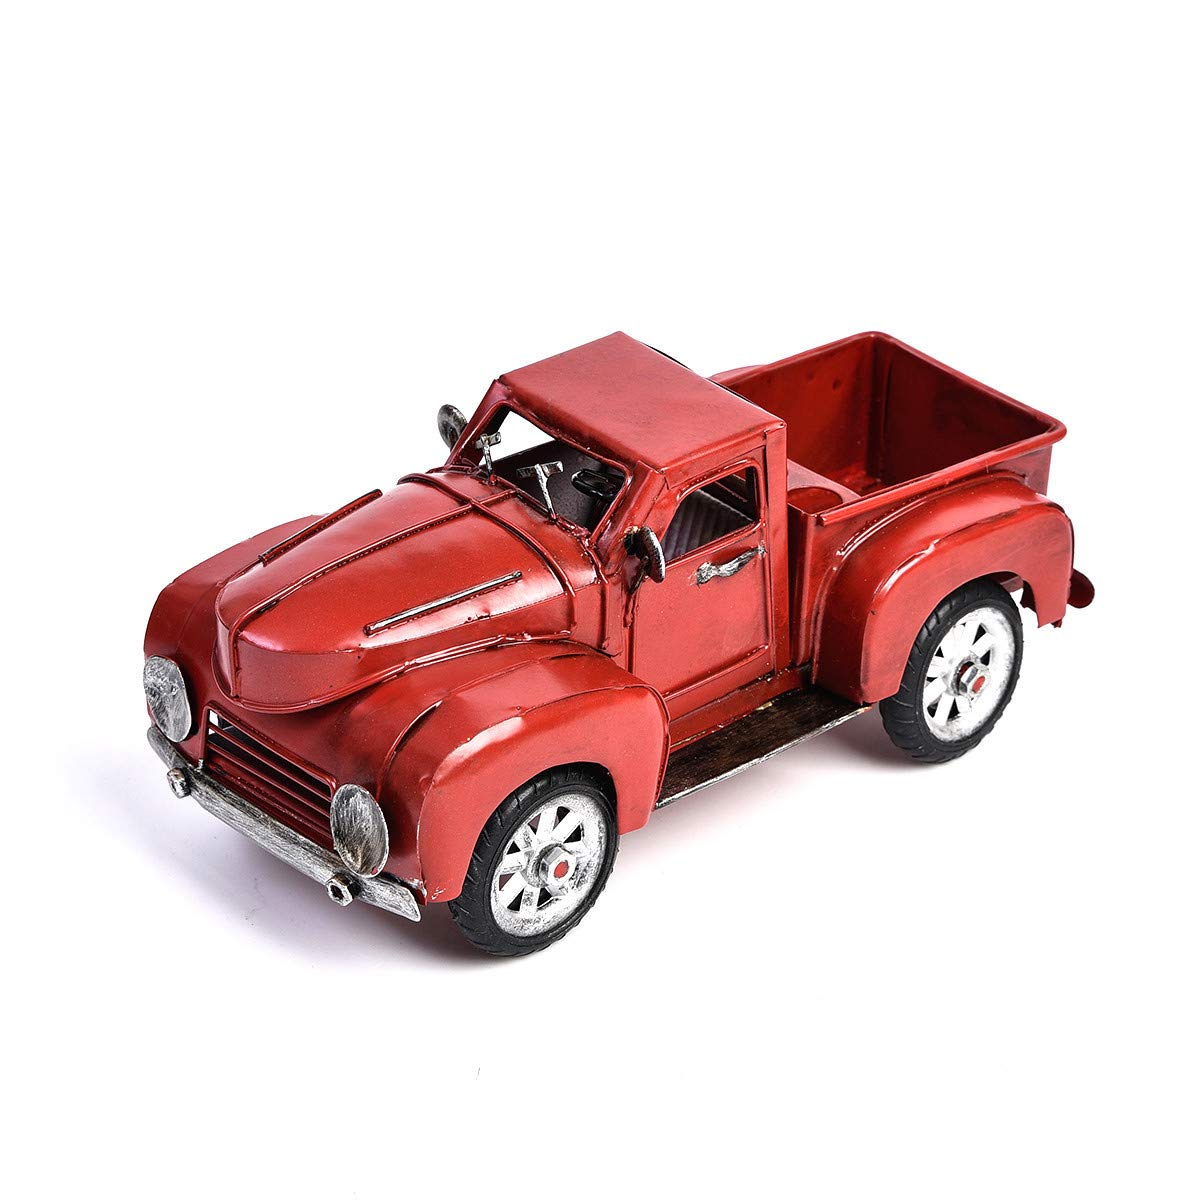 QBOSO Vintage Red Metal Truck Pick-Up Die Cast Collectible Truck, Home Decor,Ornament,Desktop Decoration